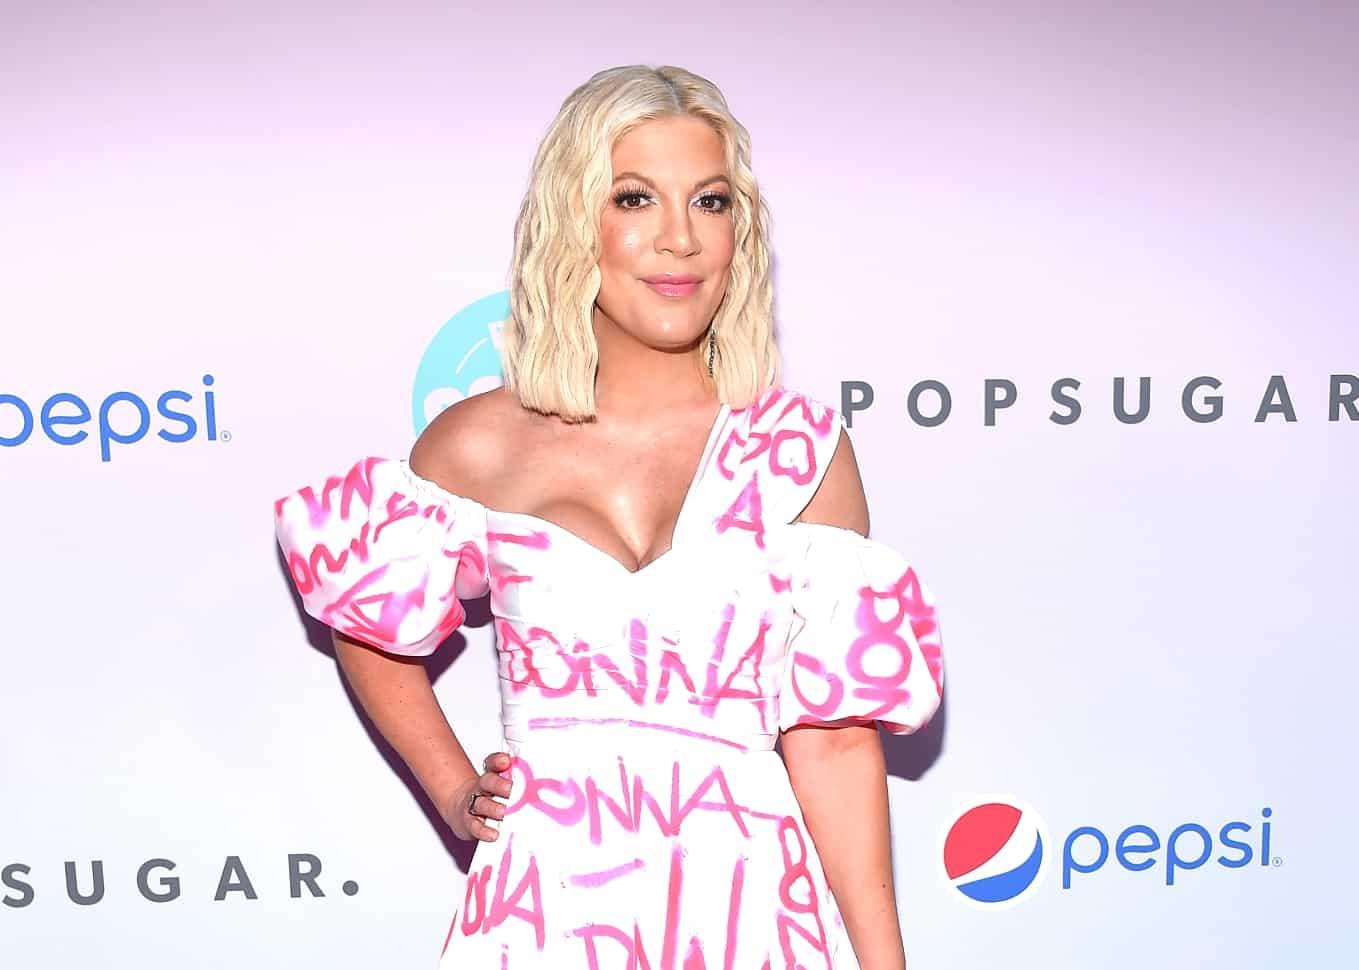 "Tori Spelling Will Not Join the RHOBH Cast Next Season as Bravo Reportedly Plans to ""Take a Break"" From Hiring Actresses as Real Housewives, Find Out If Sutton Stracke is Returning"